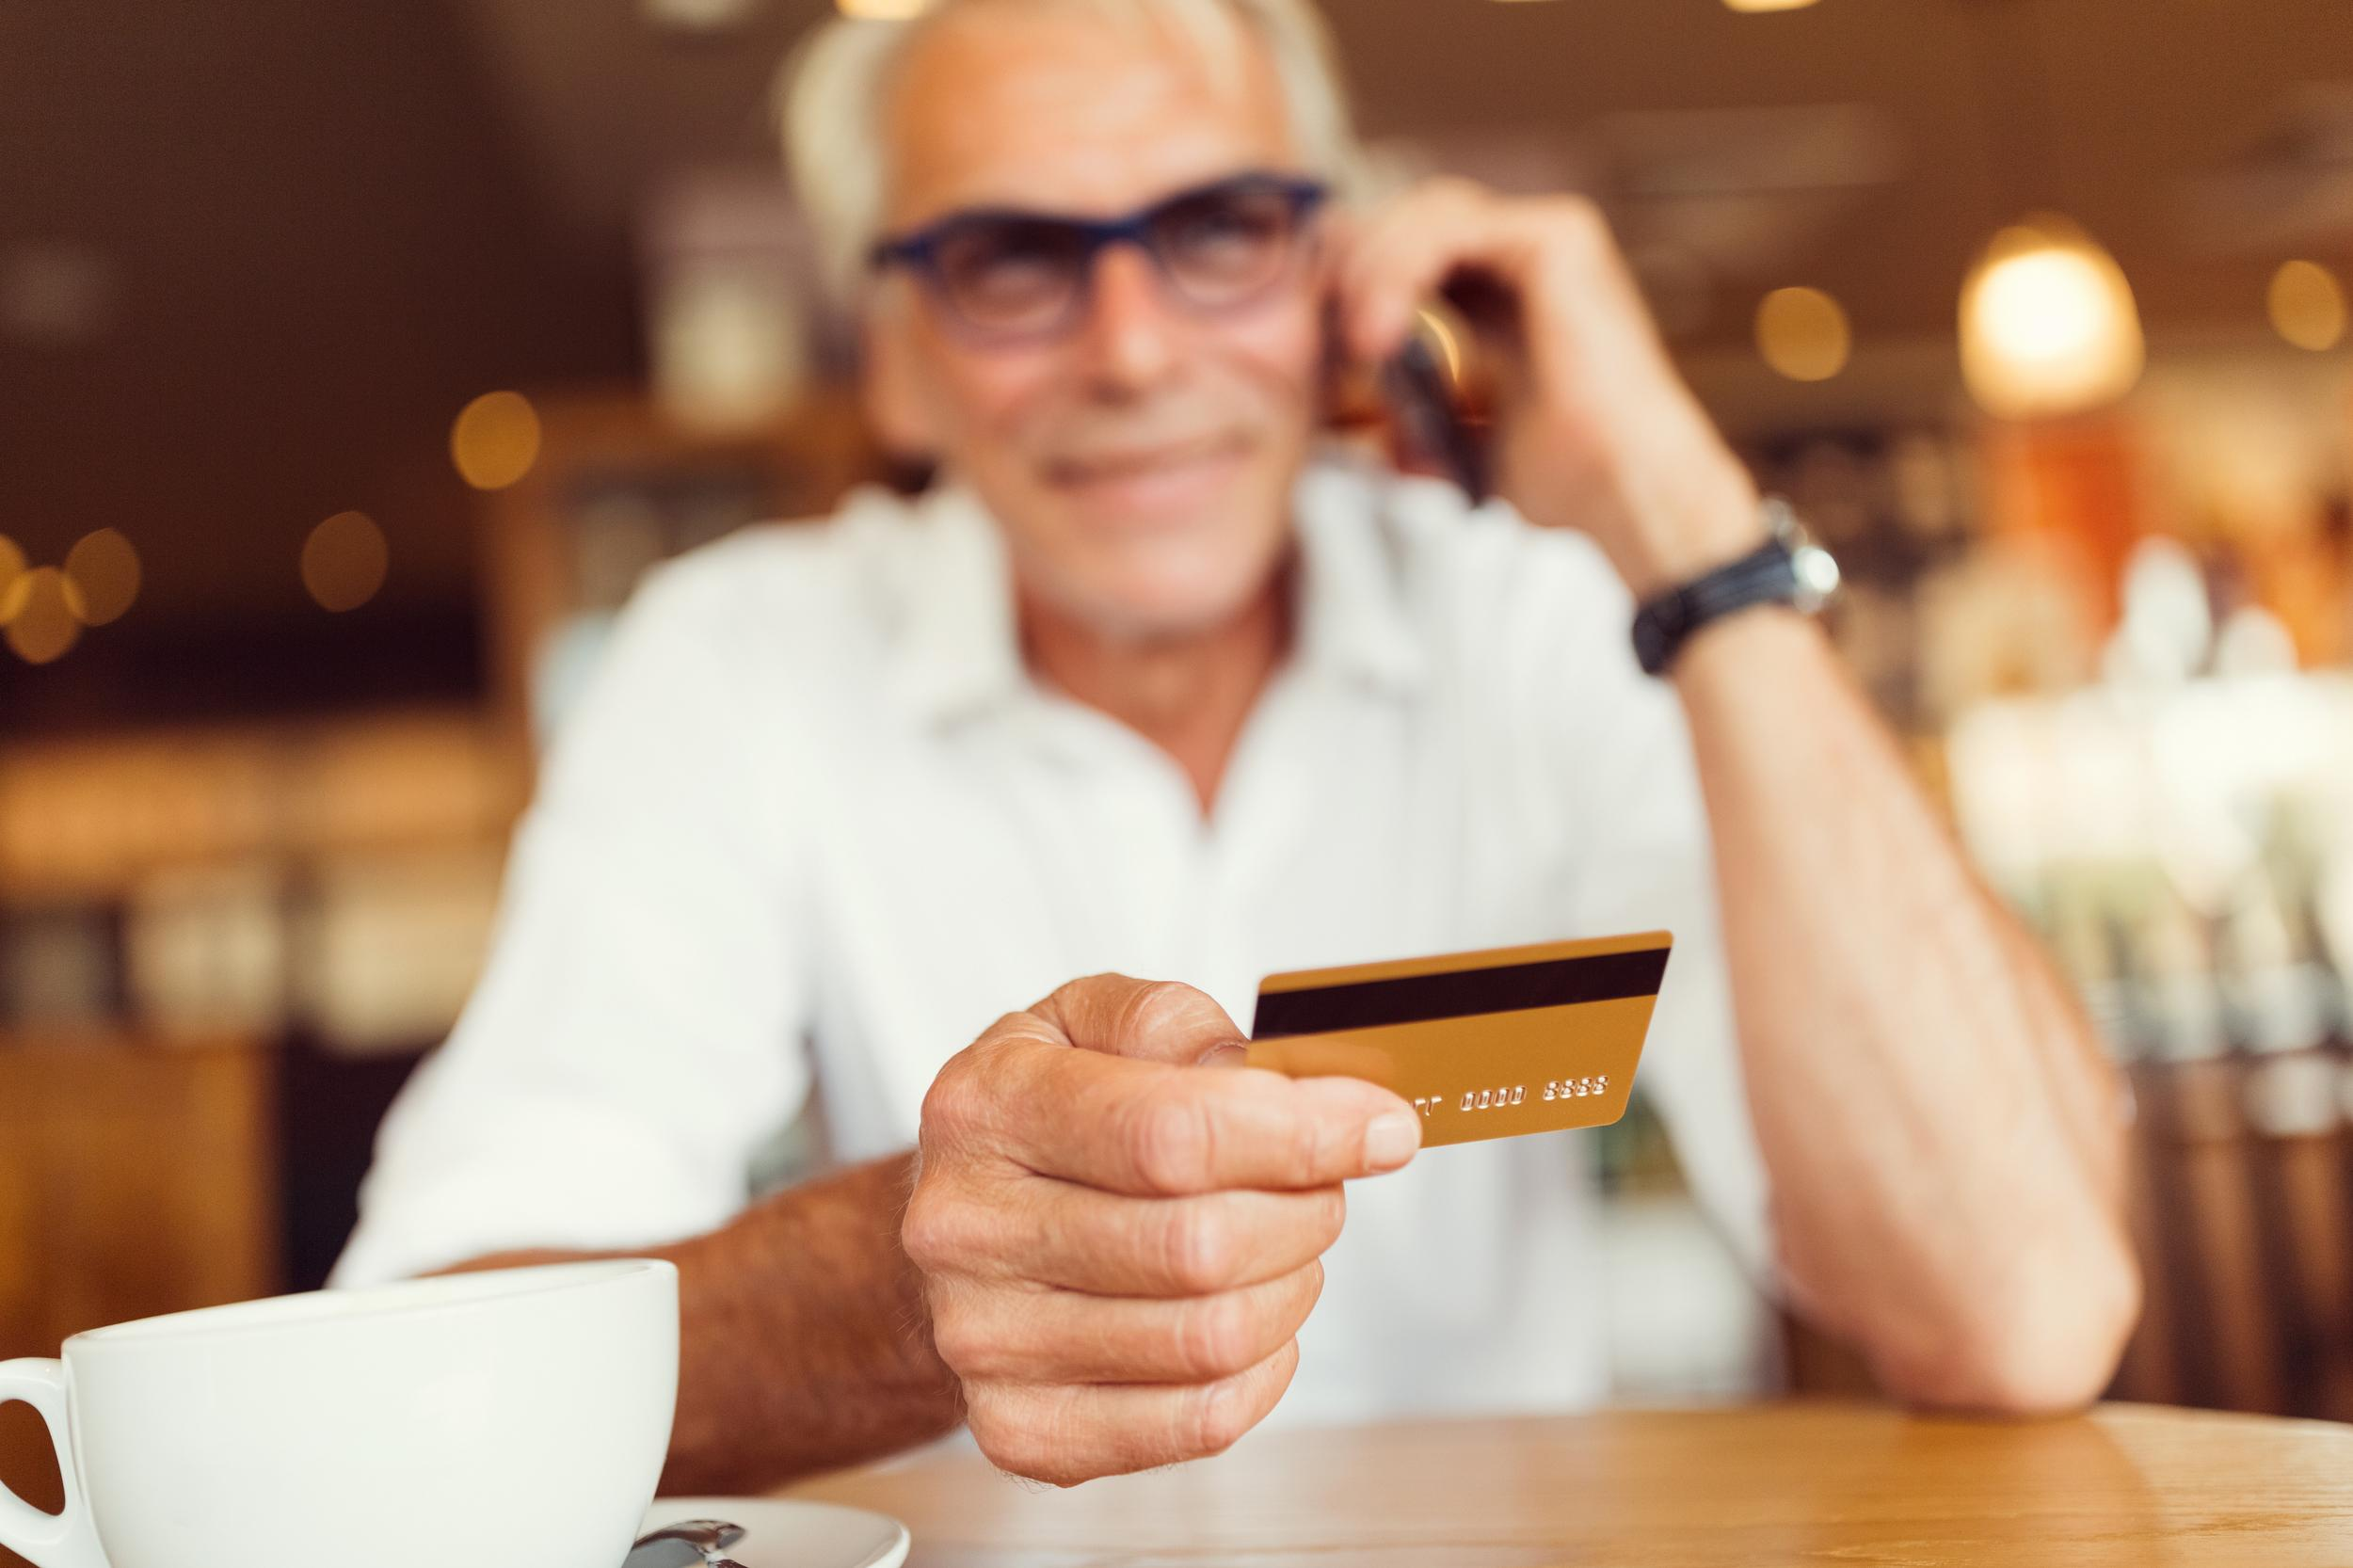 <p>Unsurprisingly, while some pensioners are very well off indeed, others are struggling with debt. Figures from Key Retirement found that the average retiree has £34,000 of debt.</p>  <p>Most of this is mortgage borrowing - in many cases driven up by the number of people who unwittingly signed up to an interest-only mortgage. However, credit cards, overdrafts, and loans are also common. It's why so many pensioners have used pension freedoms to access enough cash to pay their debts.</p>